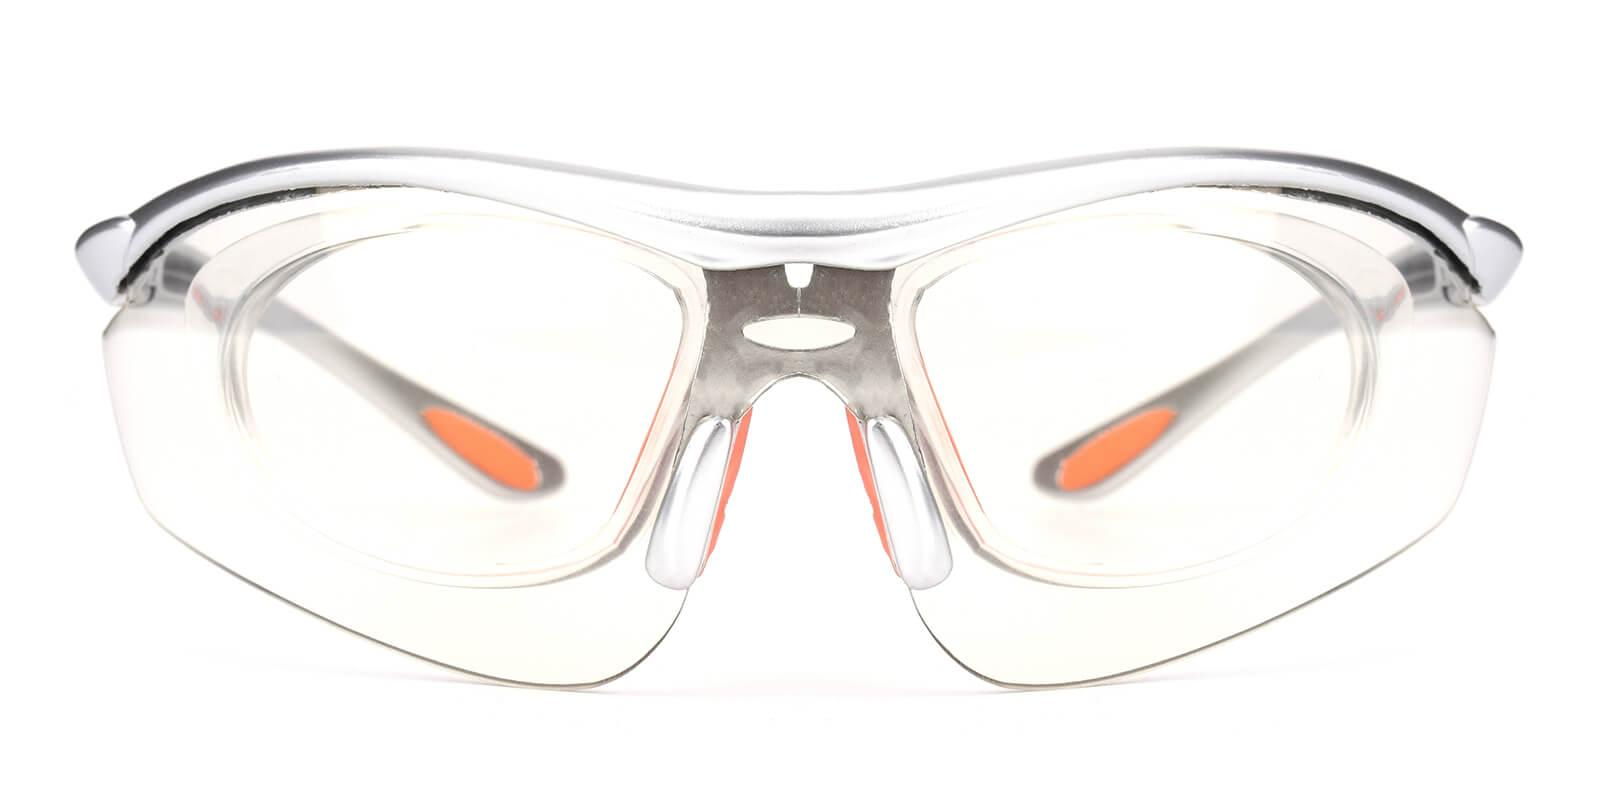 Preavey-Silver-Square-Plastic-SportsGlasses-additional2